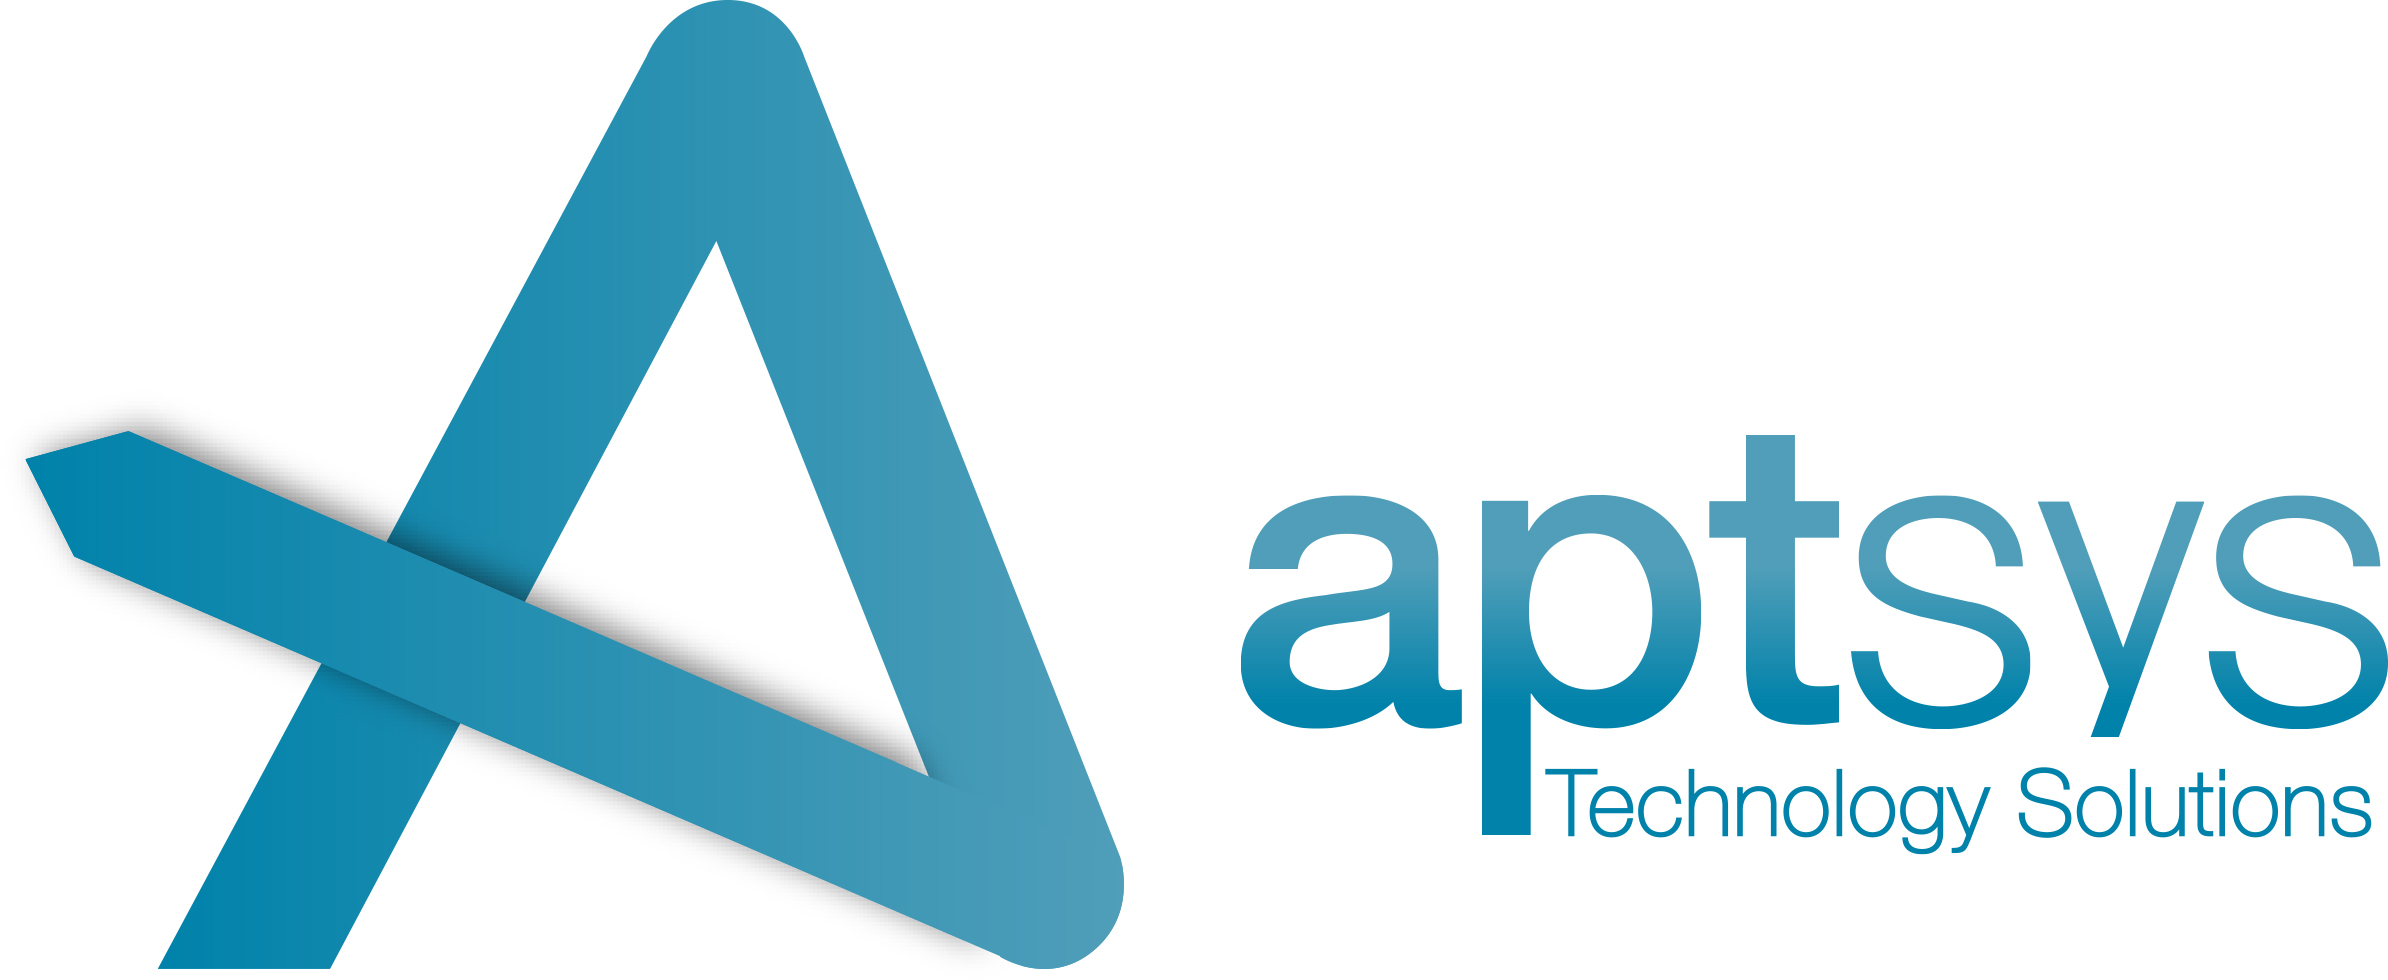 Aptsys Technology Solutions Pte Ltd Help Center home page